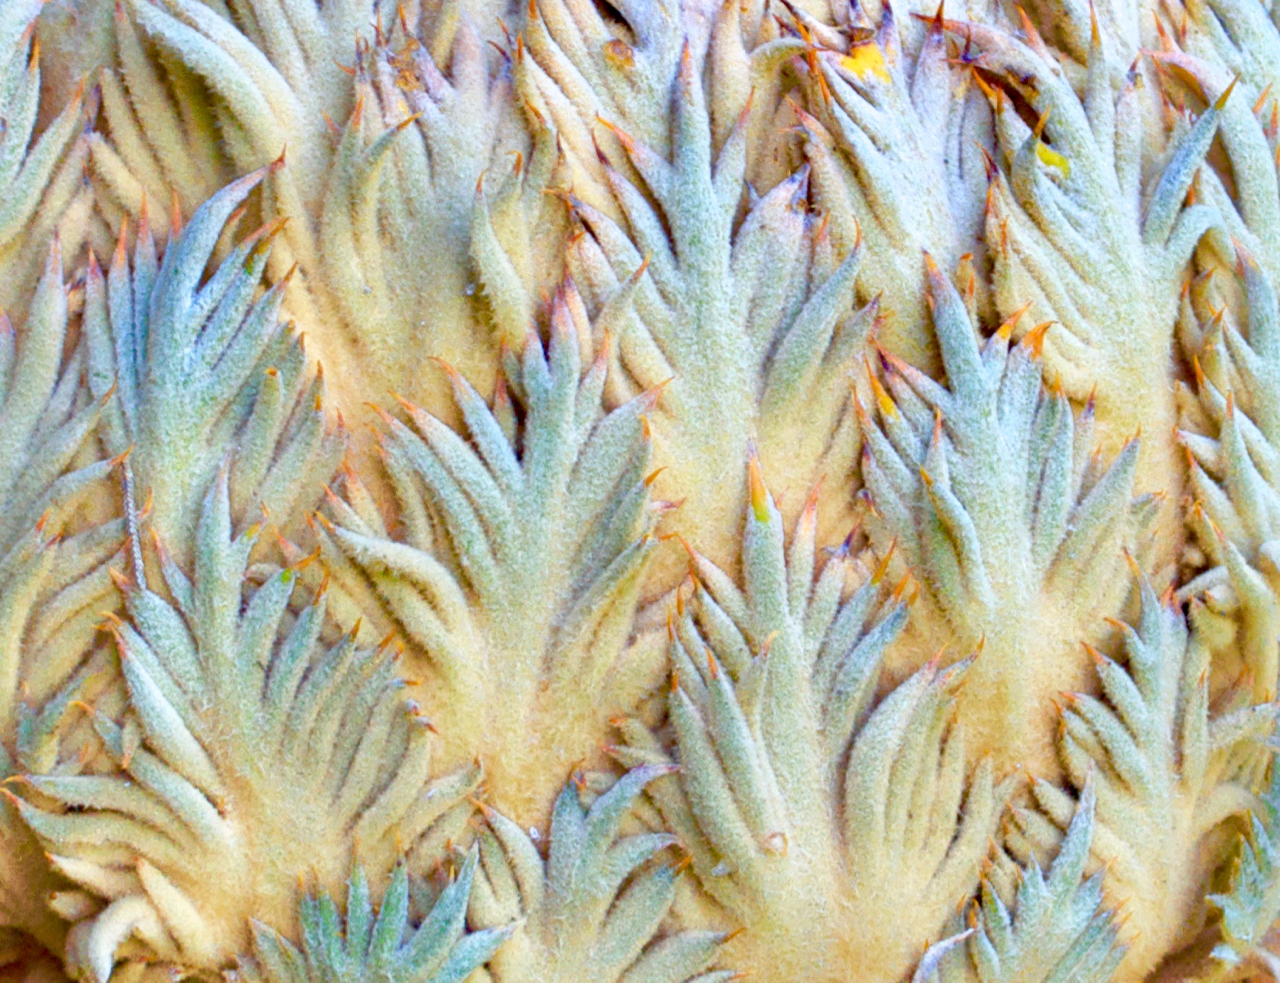 Cycad, beautiful and strange